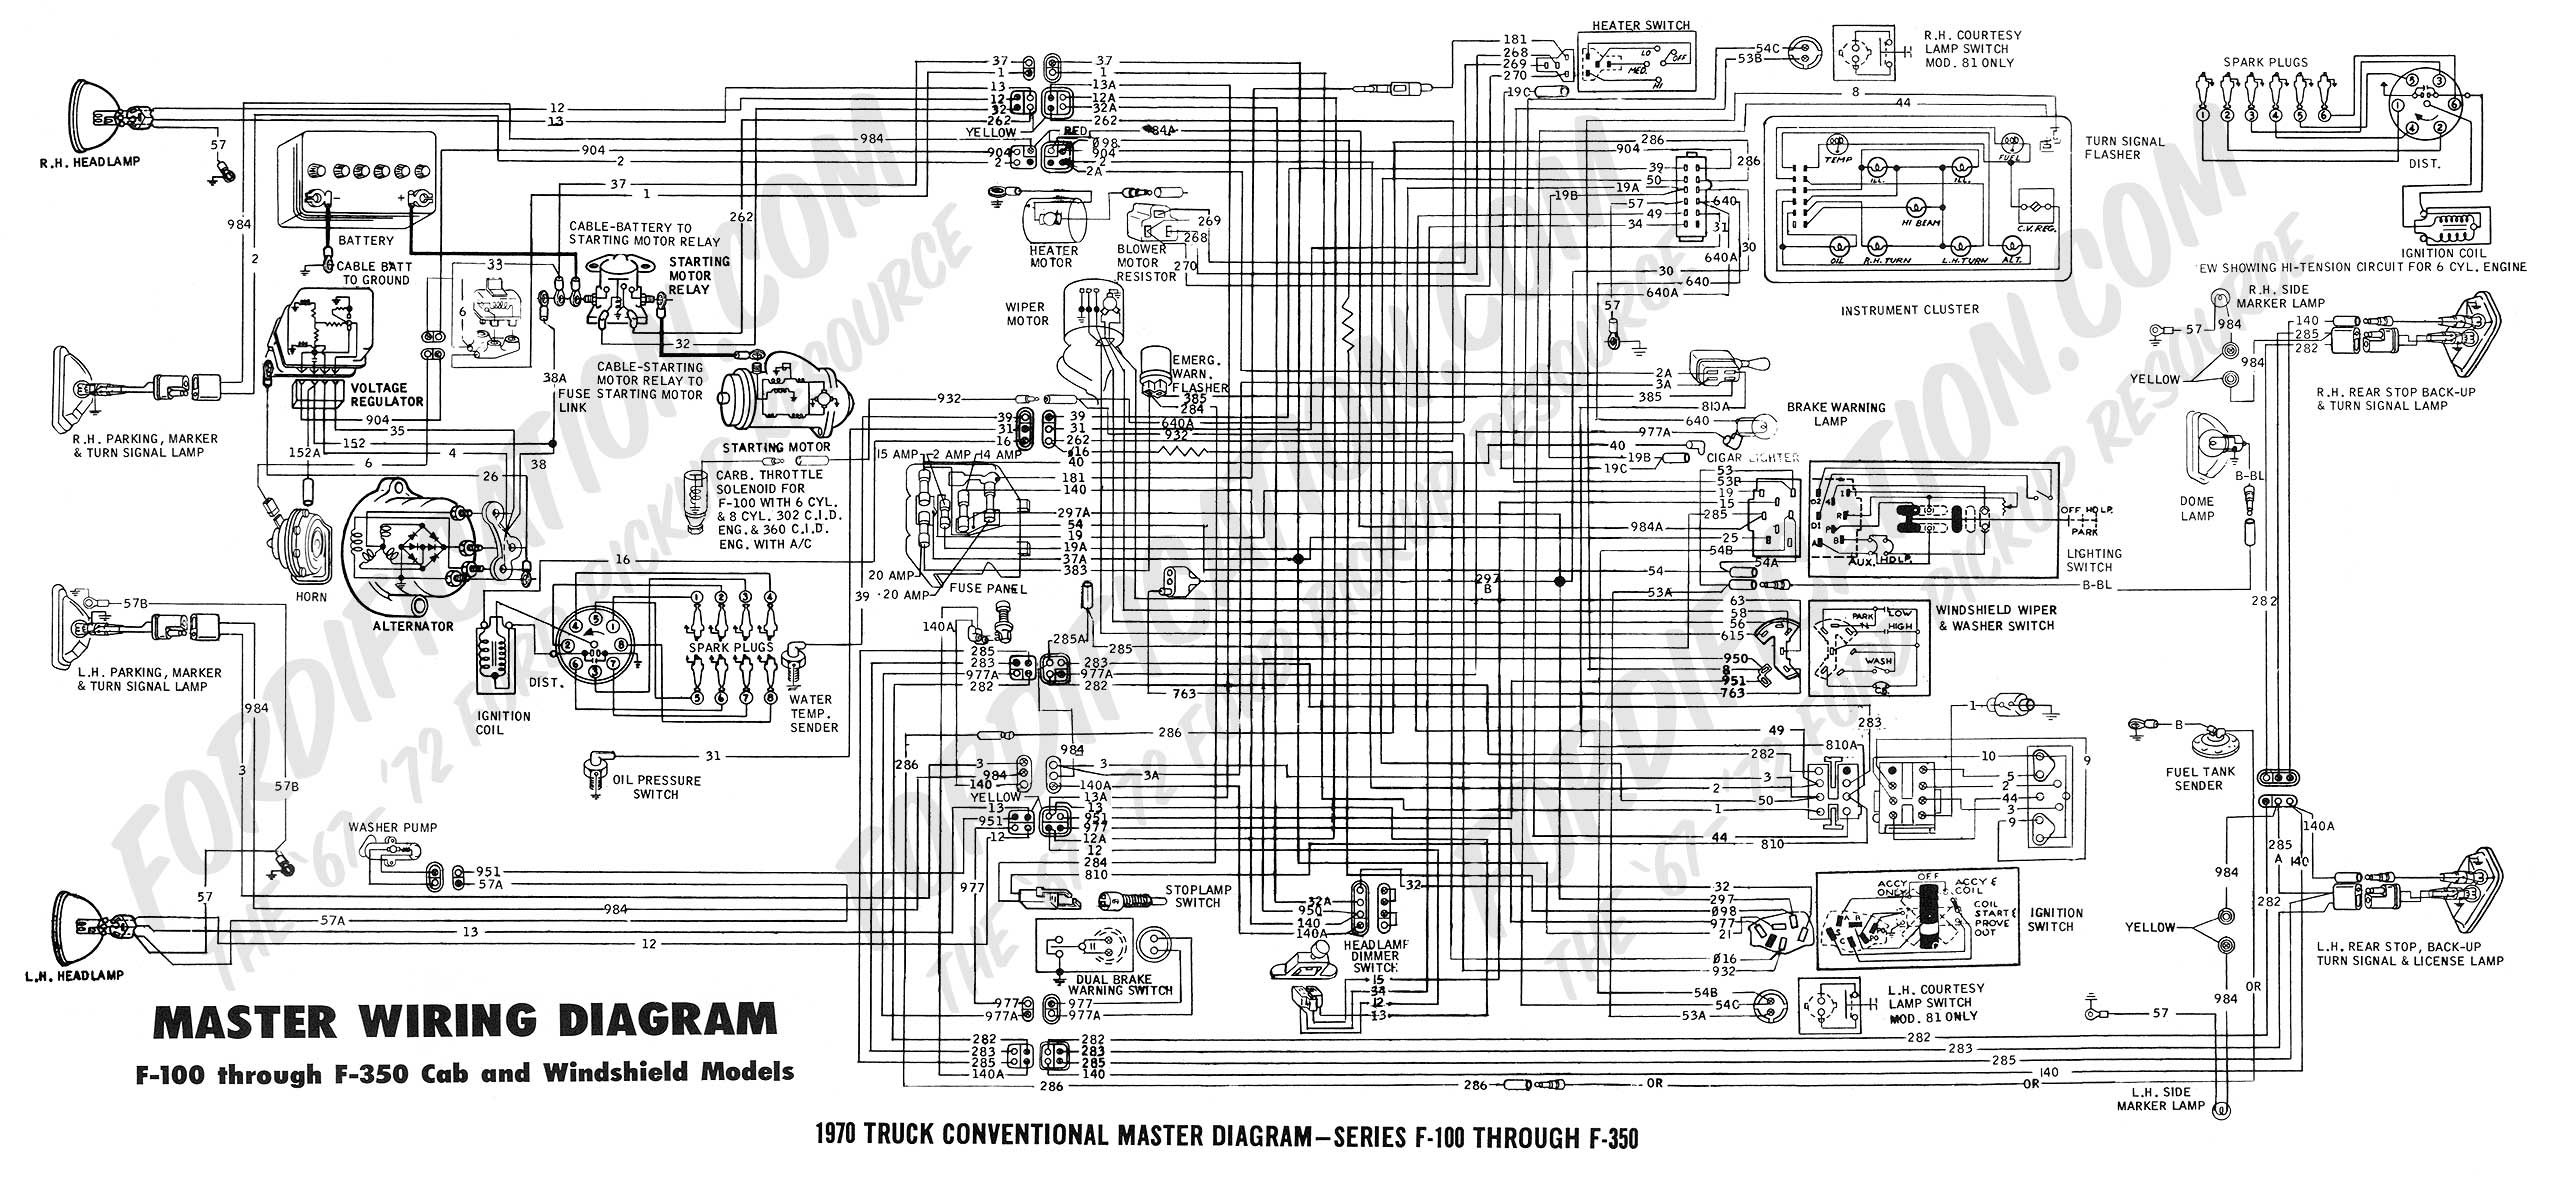 Super Wiring Diagram For 1972 Ford Mustang Diagram Data Schema Wiring Cloud Cosmuggs Outletorg